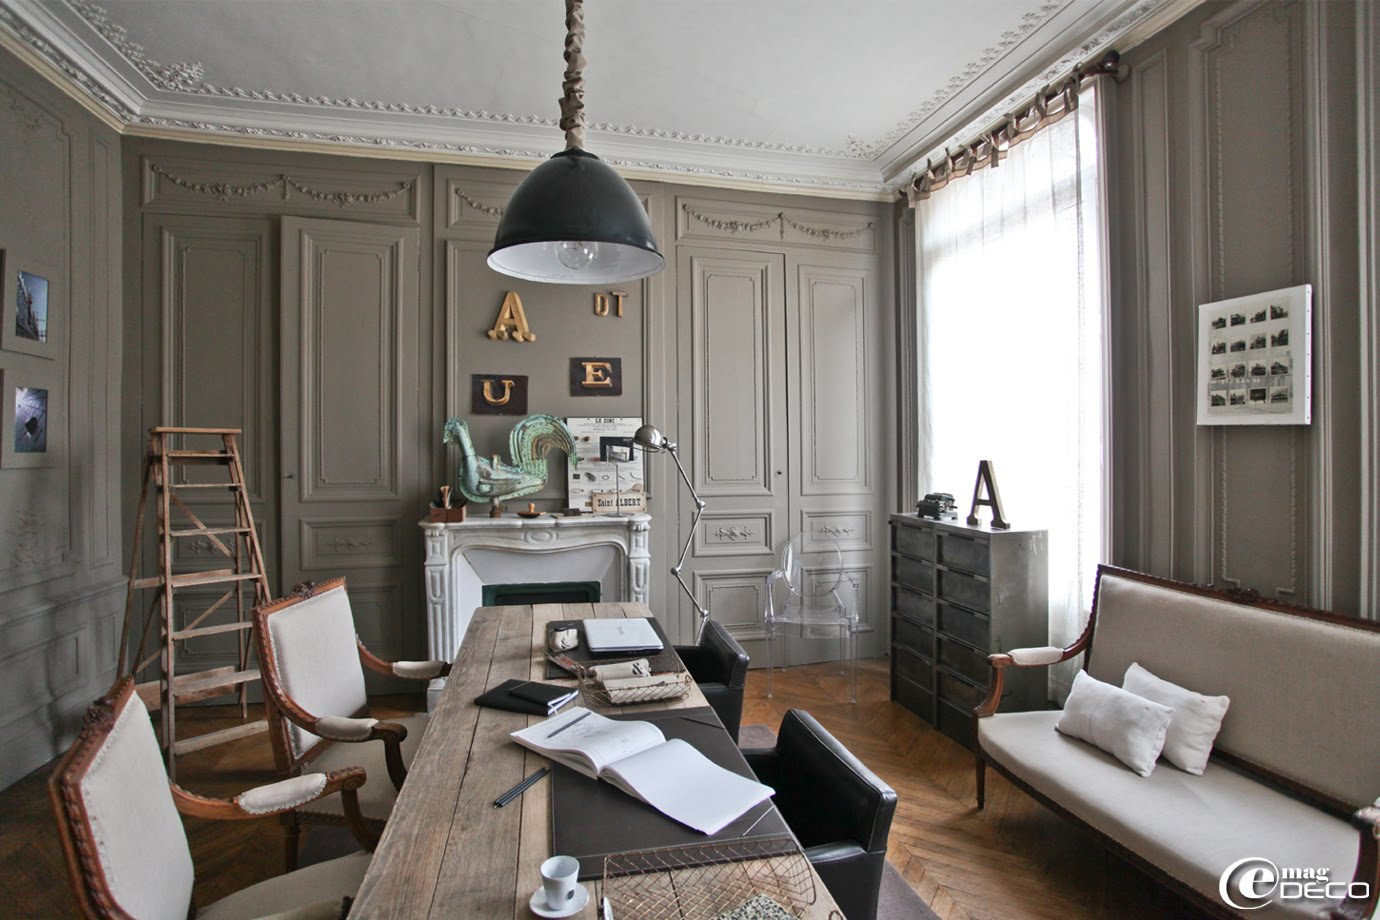 une maison de passionn s pr s de rouen e magdeco magazine de d coration. Black Bedroom Furniture Sets. Home Design Ideas